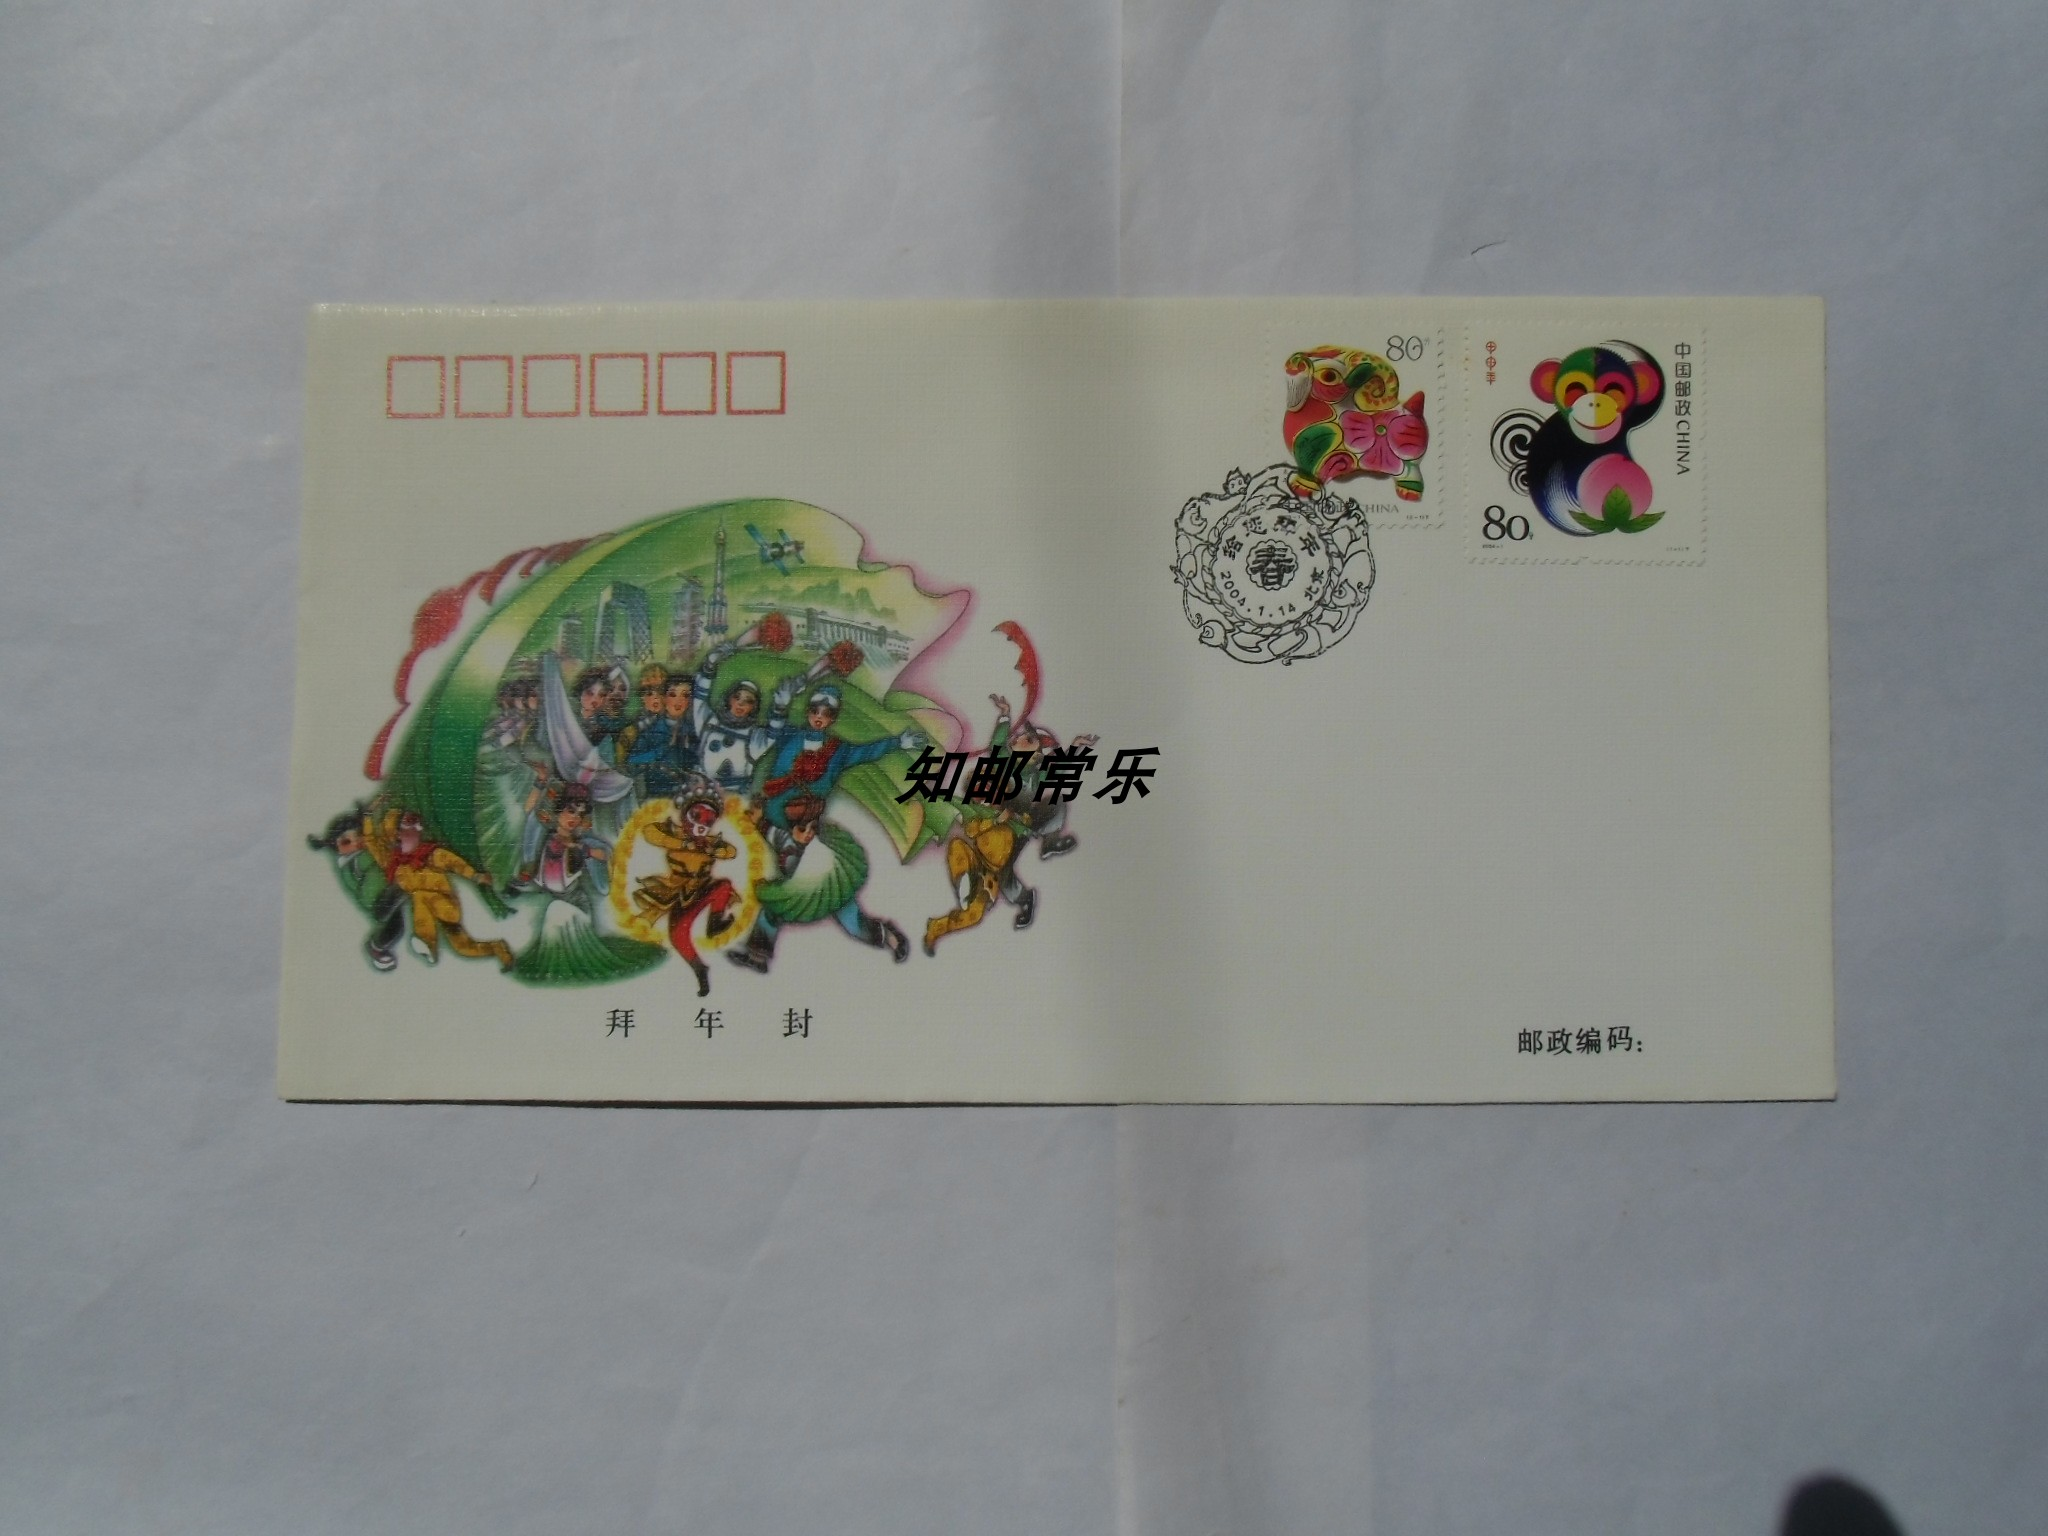 The PFBN-12 Year of the Monkey was commemorated in 2004